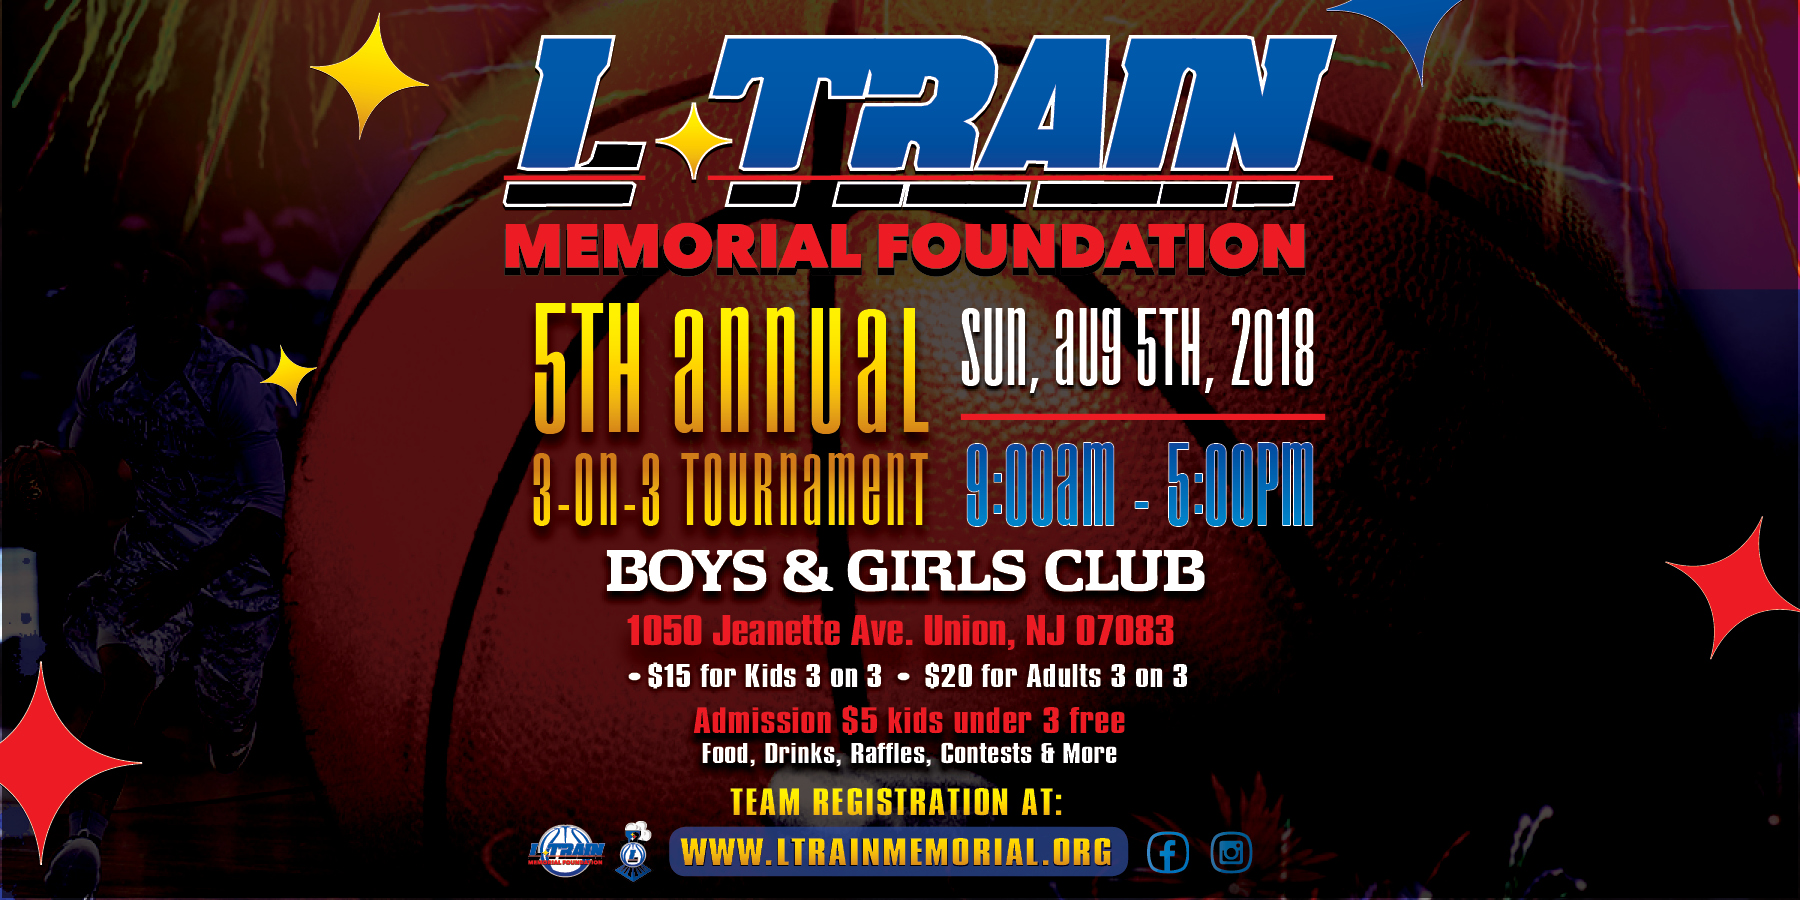 FLYER_L-TRAIN Memorial Foundation - Annu